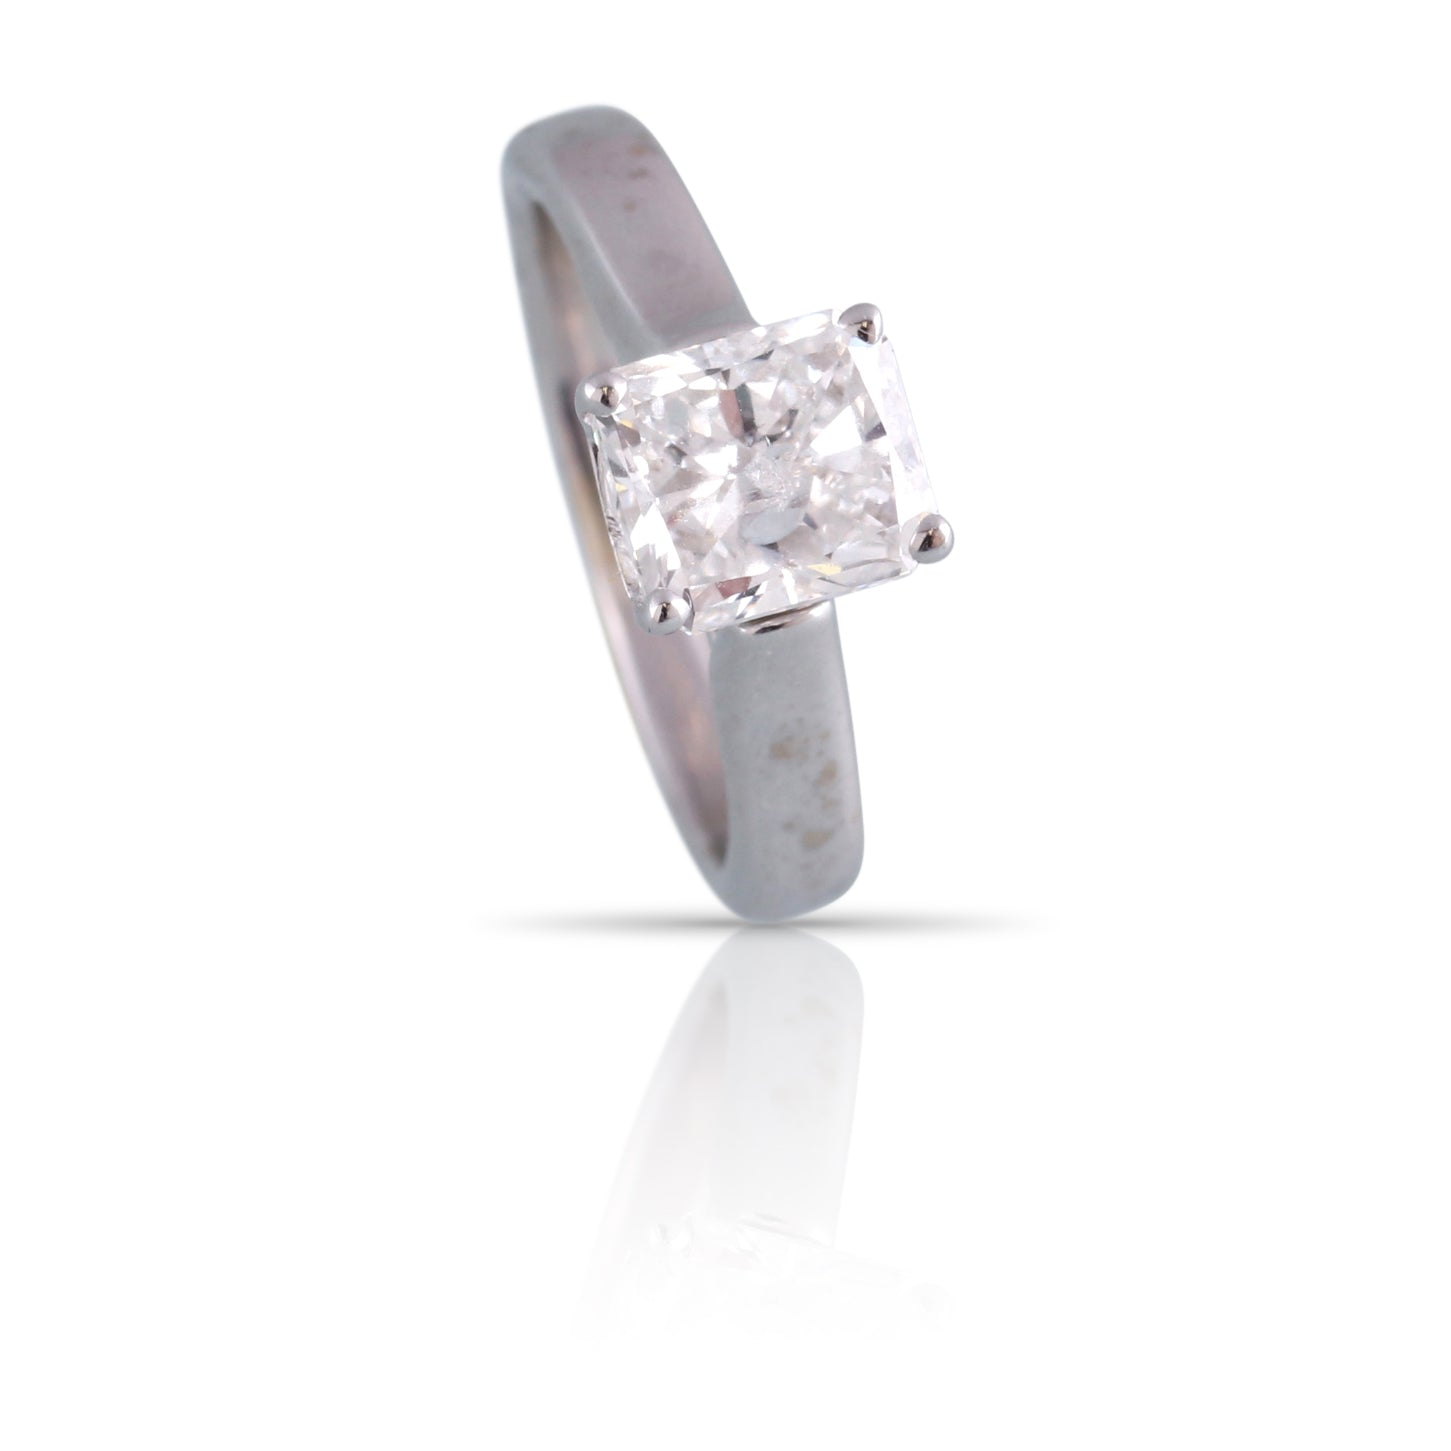 Radiant Cut Diamond Solitaire Ring | The Alyssa